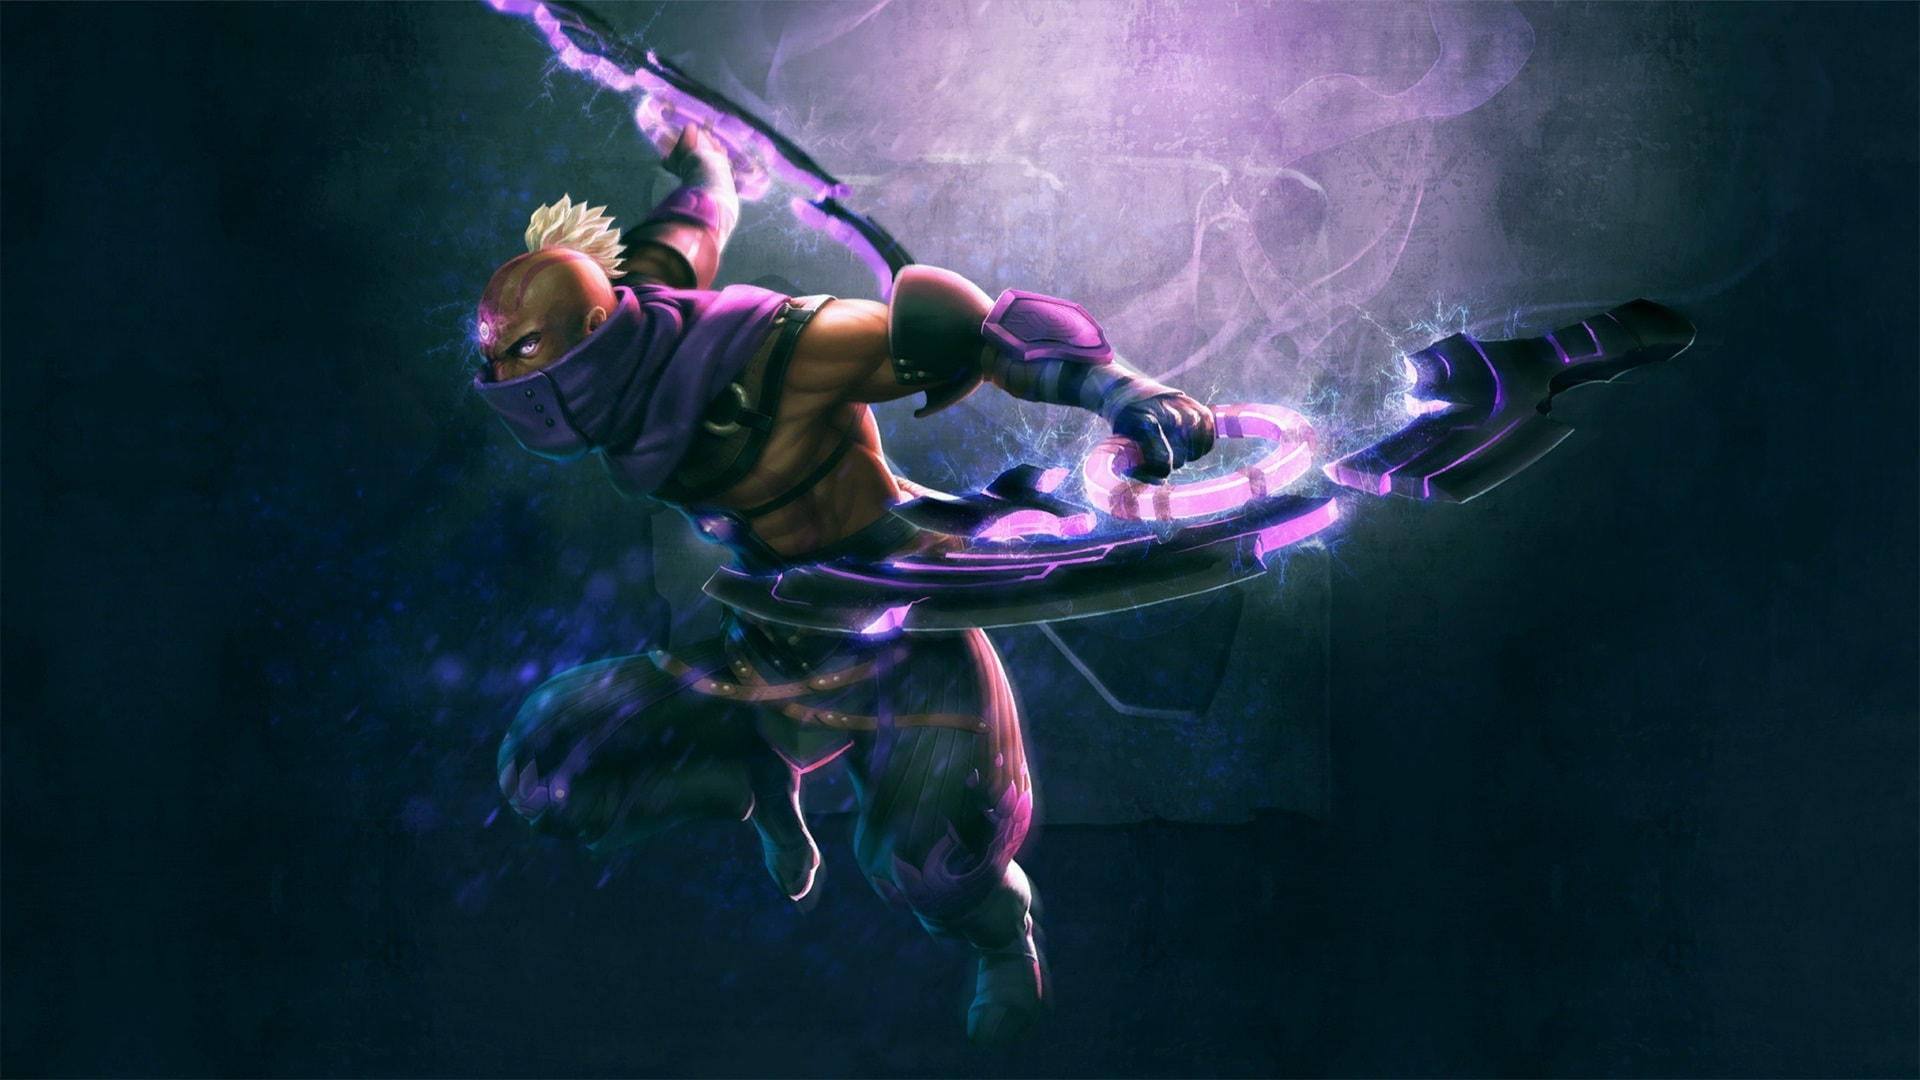 Dota2 : Anti-Mage HQ wallpapers